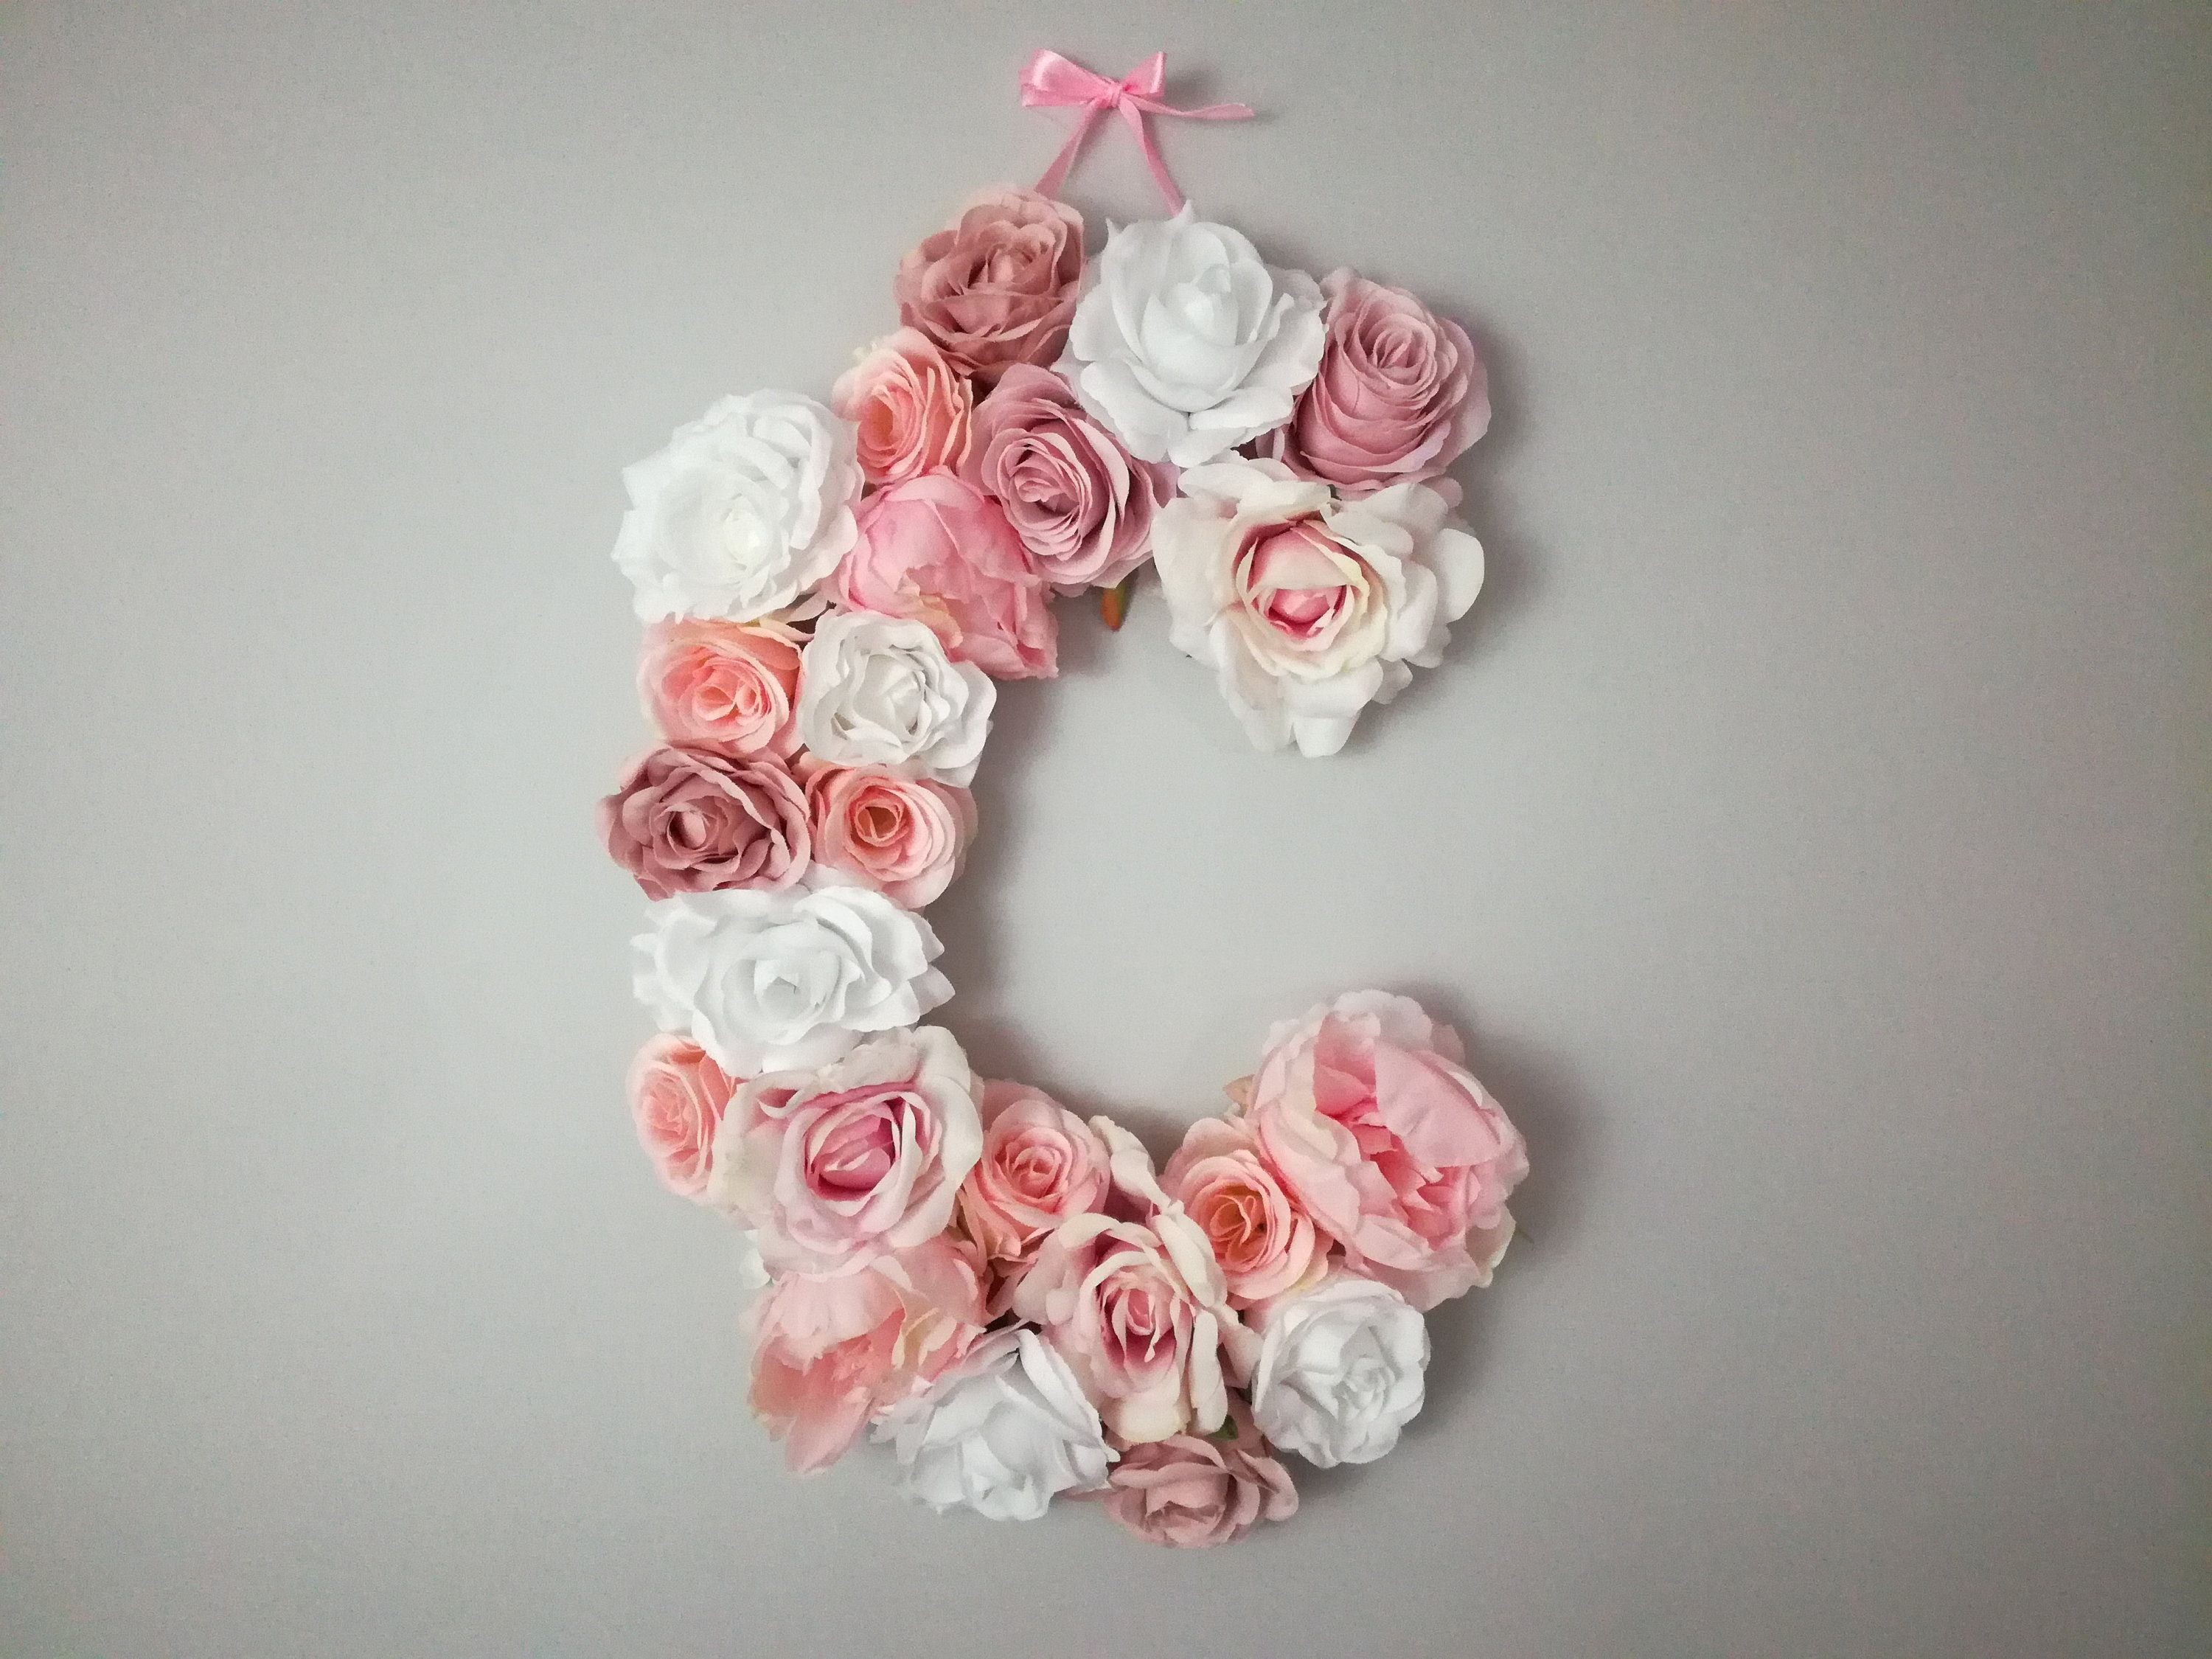 Letter Flower C Fl Large Letters For Nursery Hanging Wall Dorm Decor Wooden Pink By Gingerfeast On